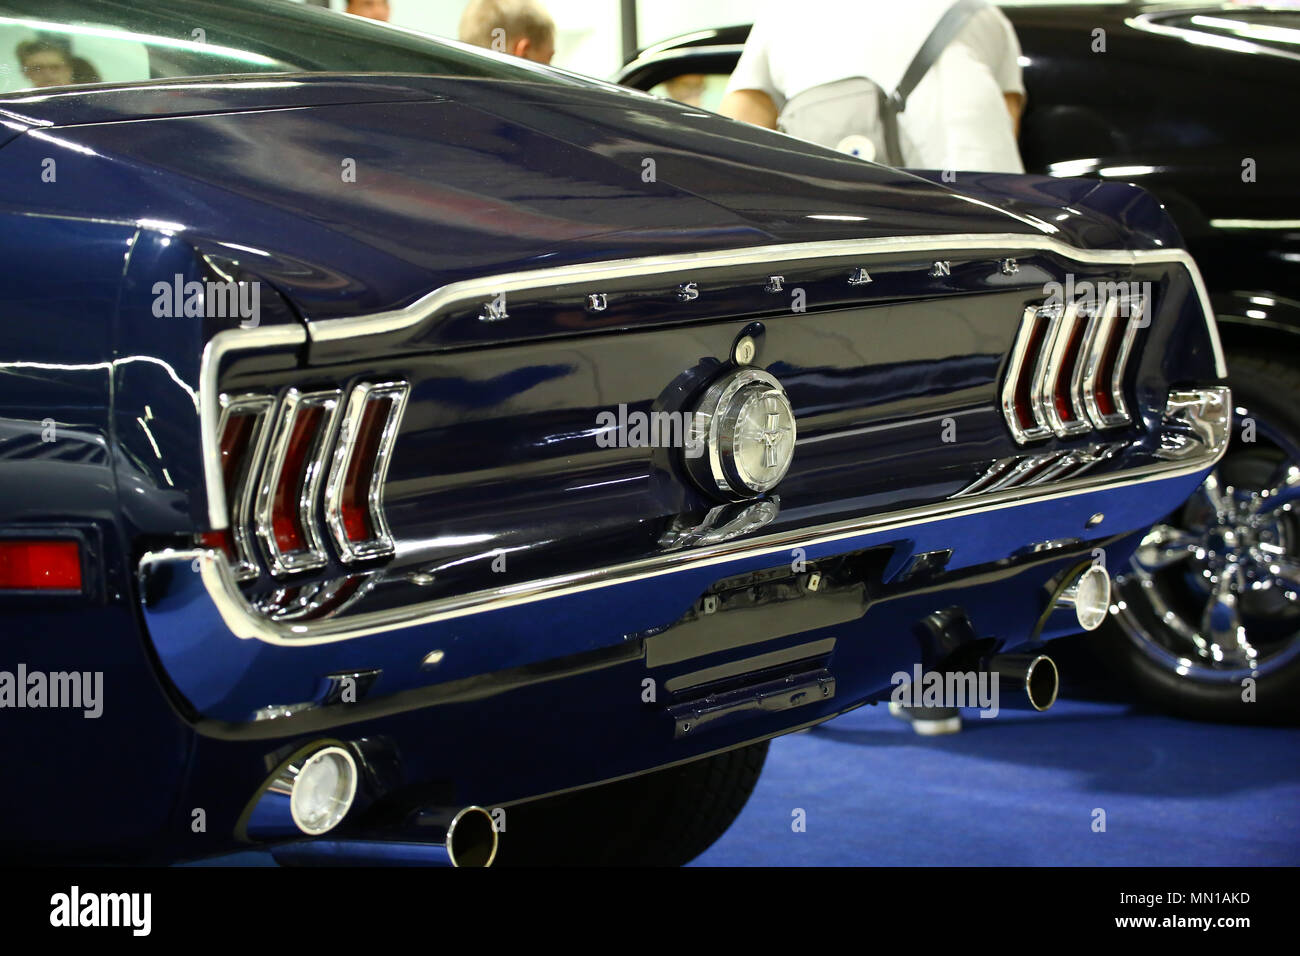 Poland, Nadarzyn, 13nd May 2018: Oldtimer Show hosts at PTAK Expo center, showing famous international brands and nostalgic Polish cars. ©Jake Ratz/Alamy Live News - Stock Image